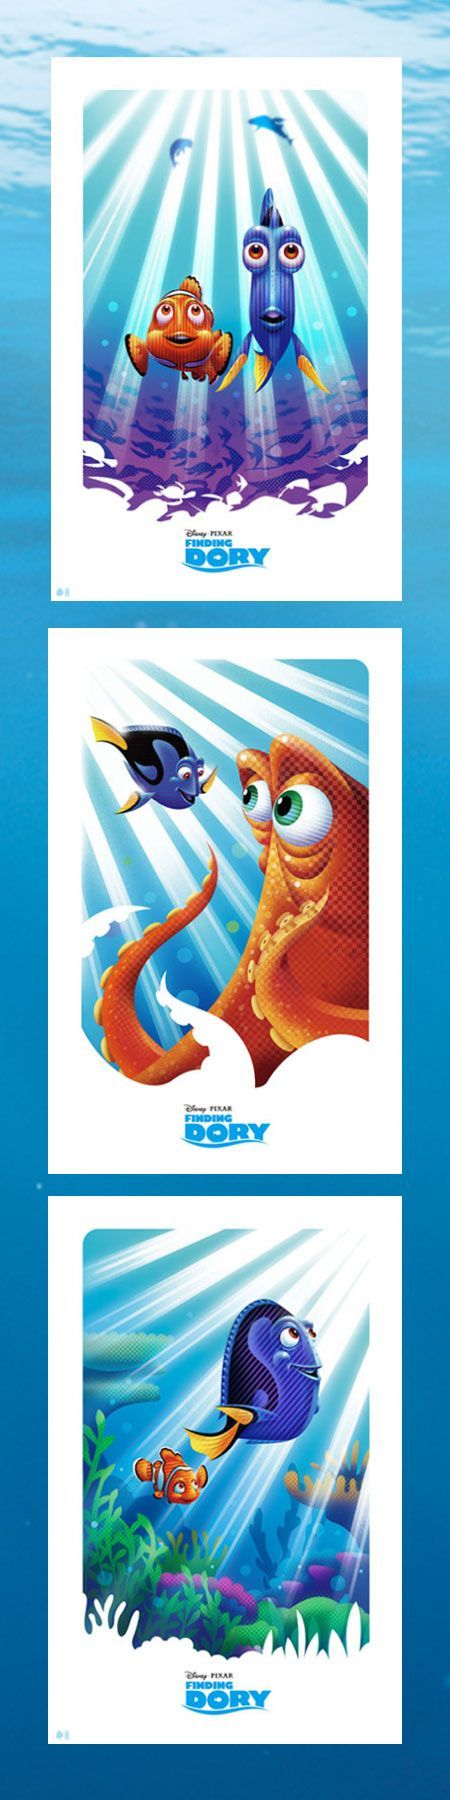 Last chance! Find out how to get a FREE* Finding Dory poster when you link your account to Fandango VIP. Want more? You can complete the set of three posters for only $17.99 (includes S&P). But hurry! Offer expires on 7/15/16! (* Plus $3.75 SHIPPING AND PROCESSING. Offer good in the U.S. only. Offer expires 7/15/16)